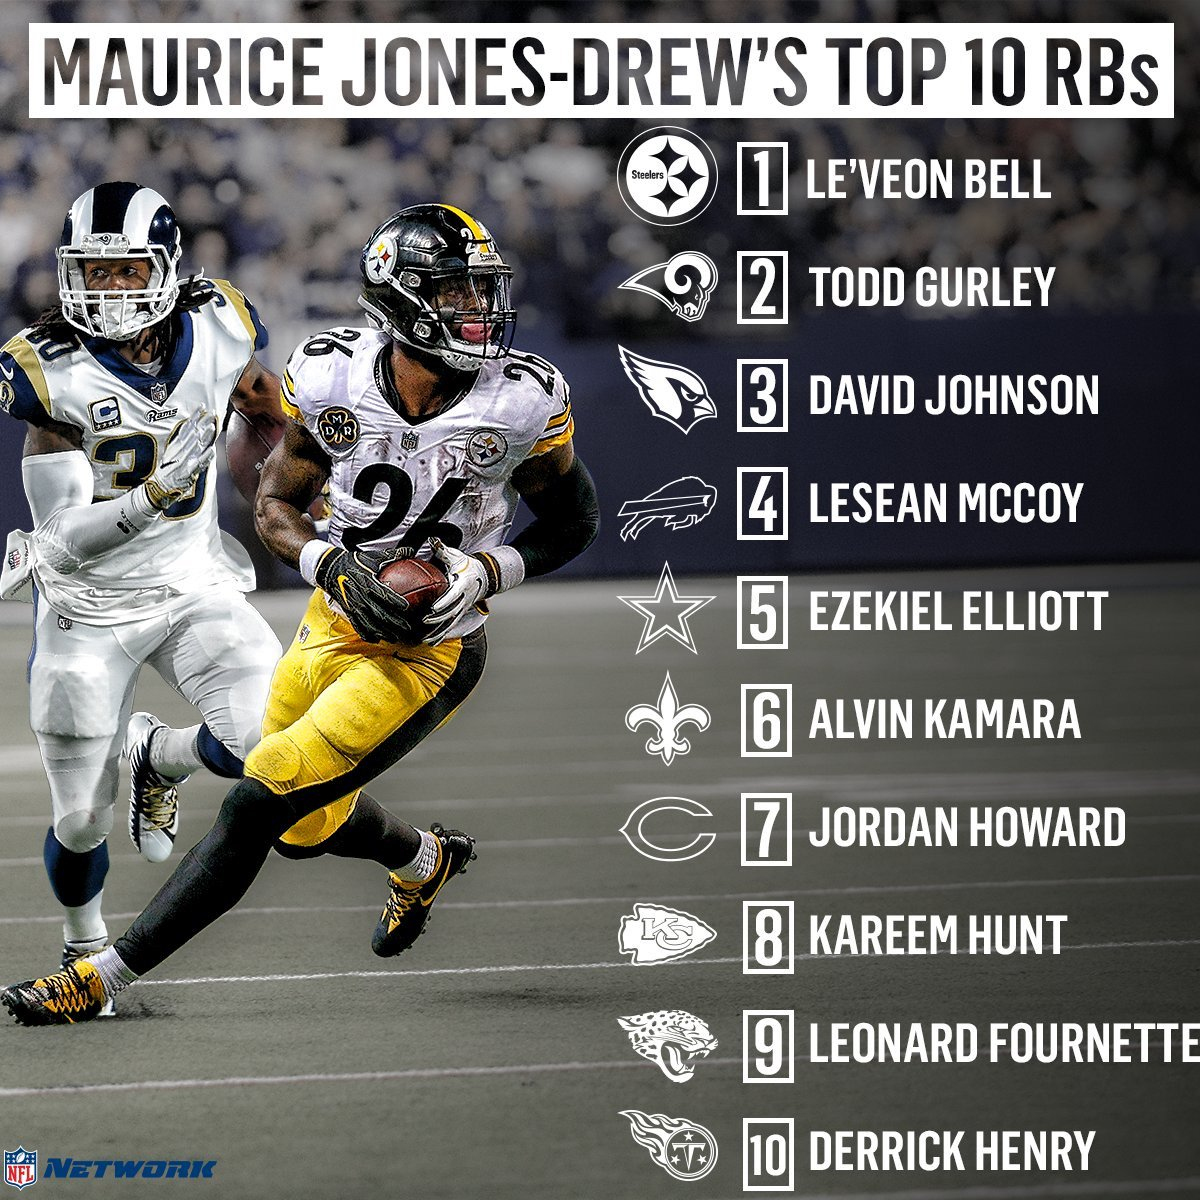 test Twitter Media - Former Jaguars running back Maurice Jones-Drew (@MJD) ranks his top 10 RB's heading into 2018! What are your thoughts on this list? https://t.co/qQWZIx2DQB